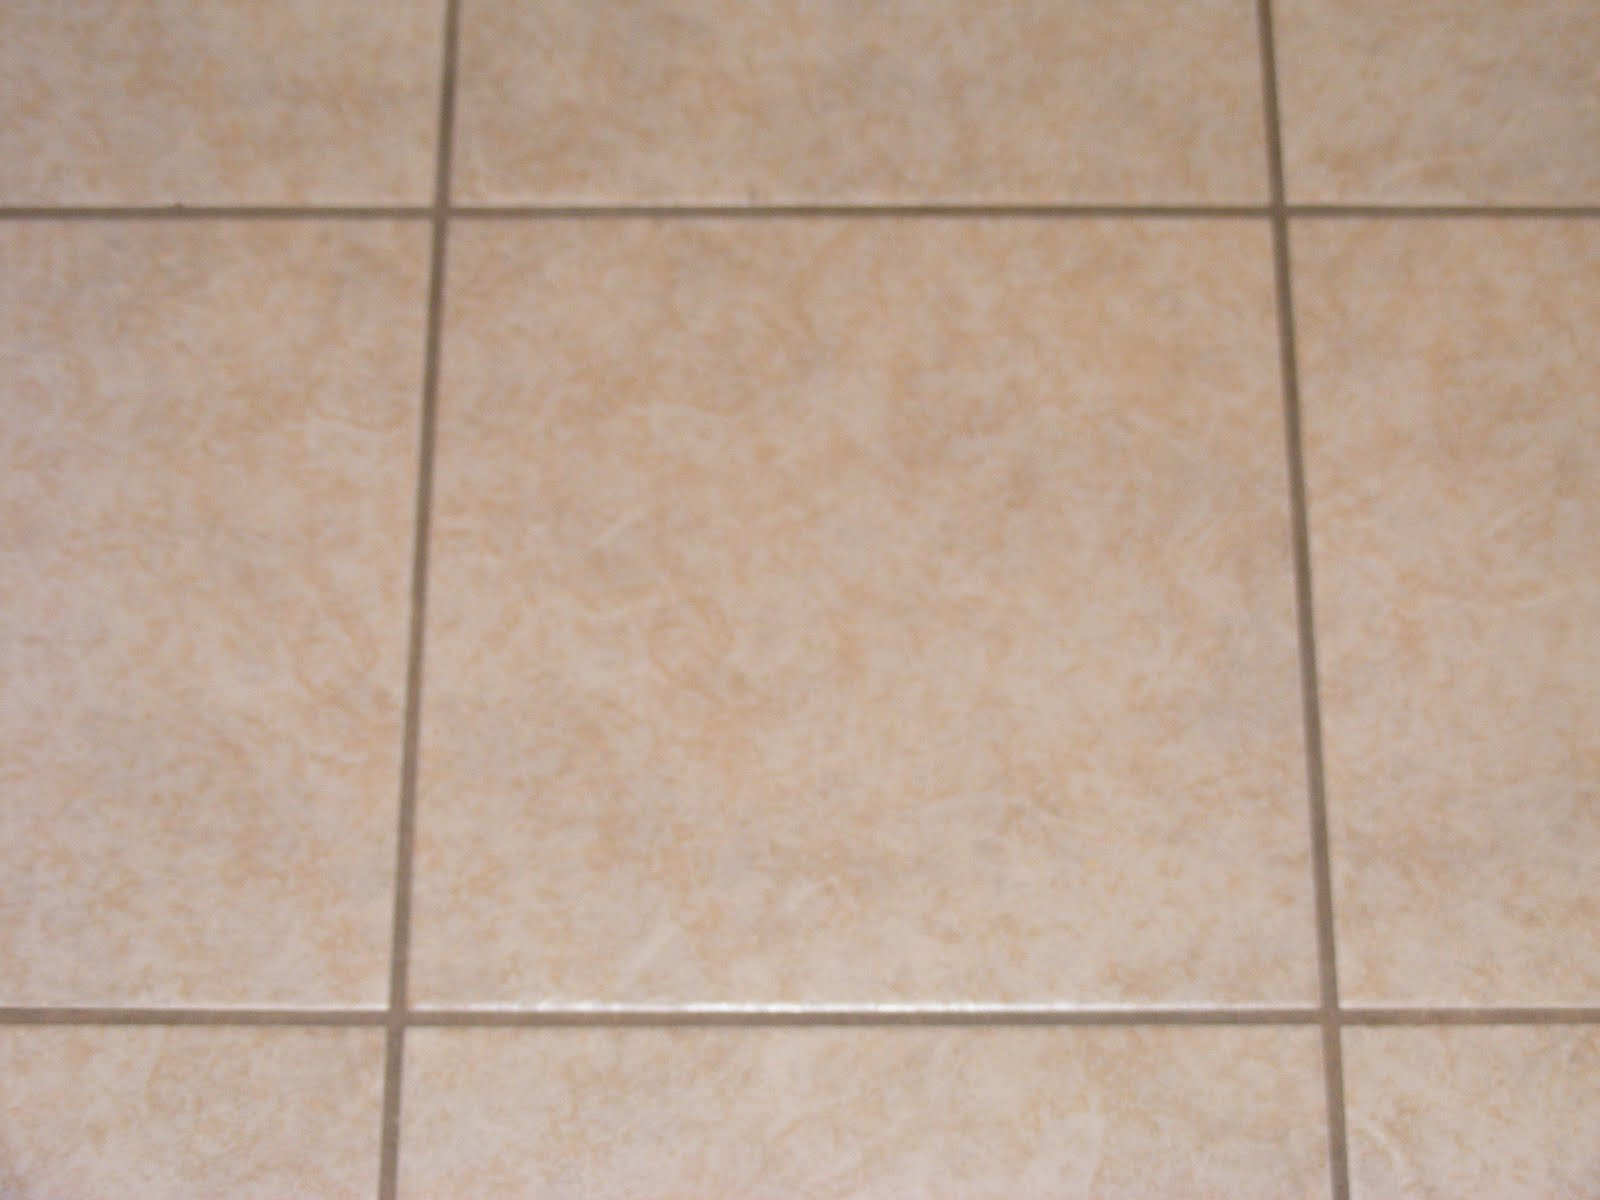 How do you clean floor tile grout